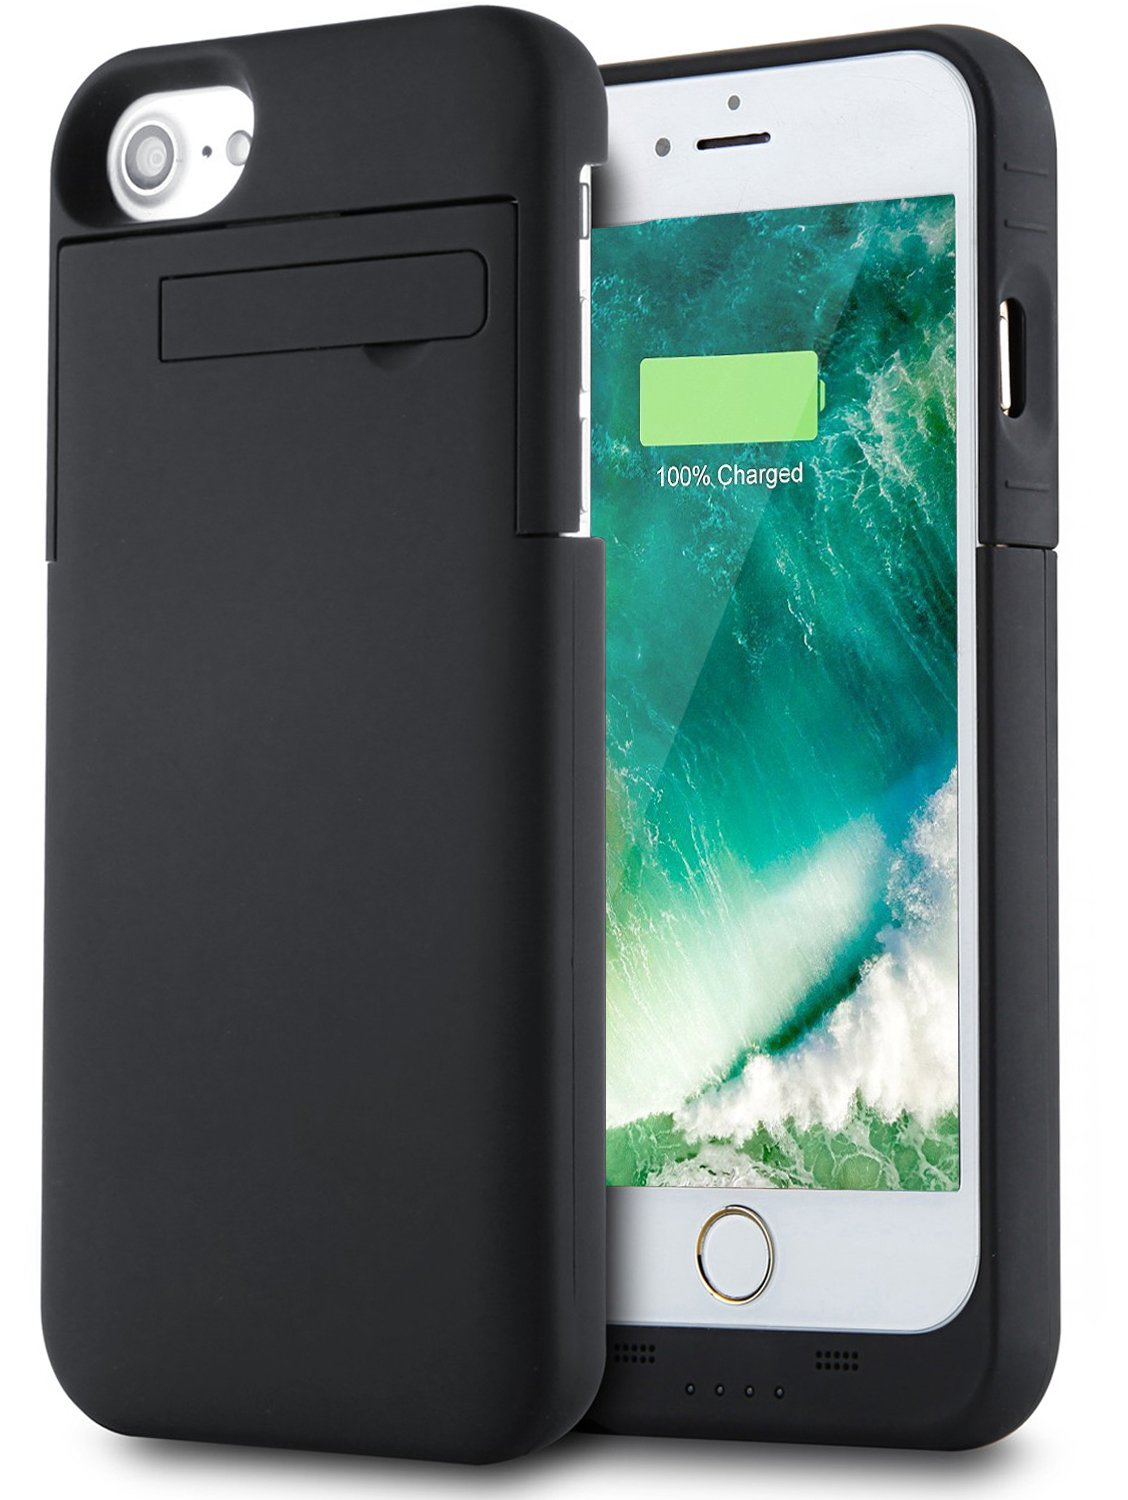 quality 3200mah portable charger for iphone 7 slim battery case black ebay. Black Bedroom Furniture Sets. Home Design Ideas